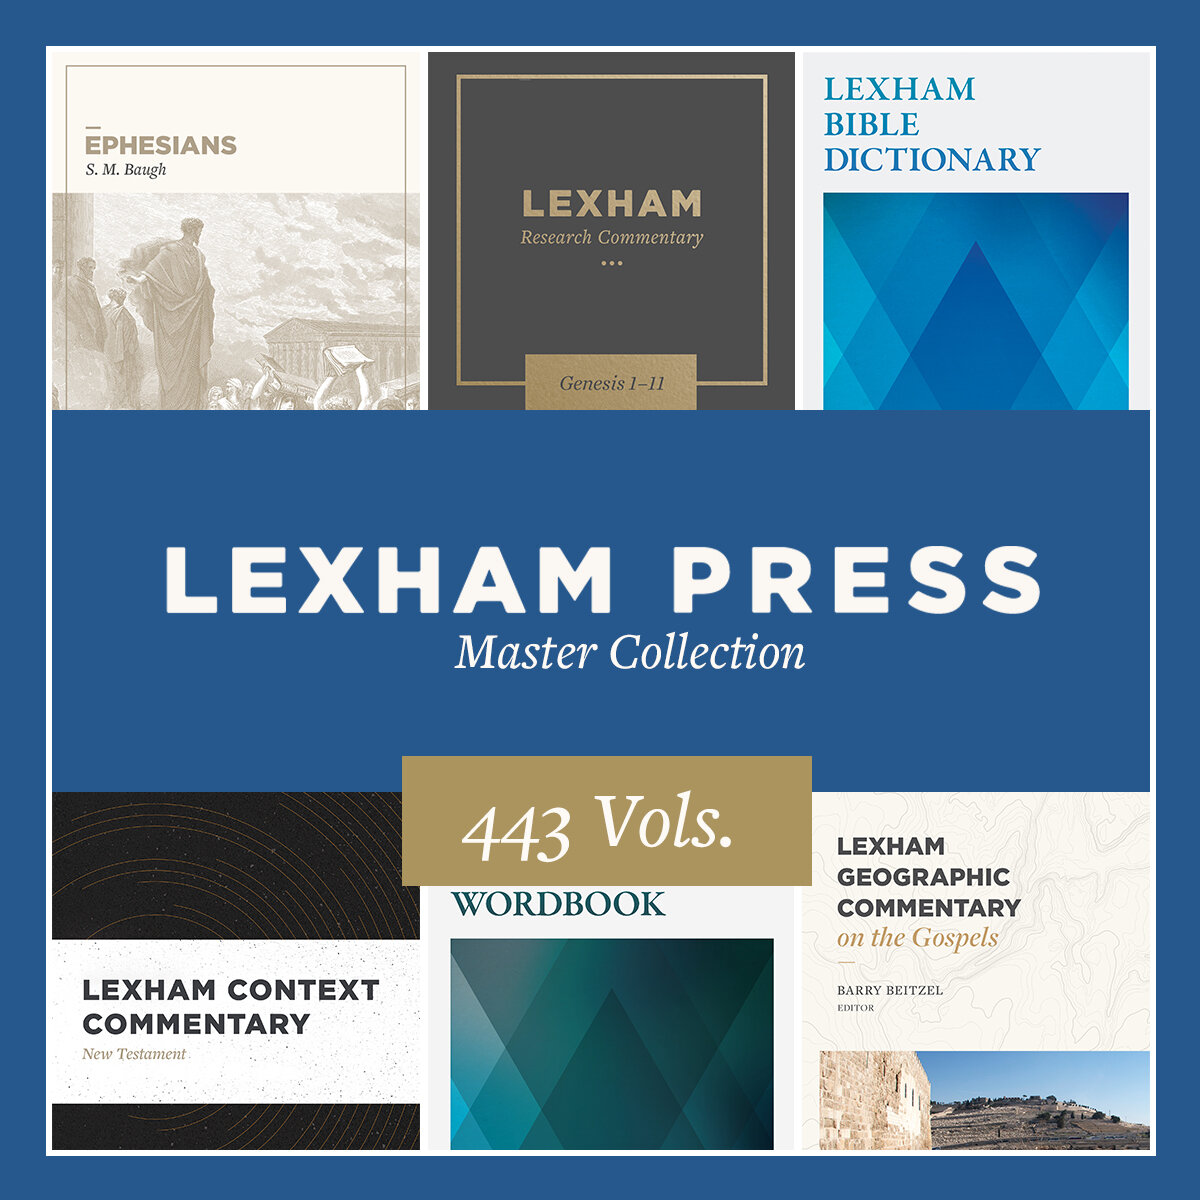 Lexham Press Master Collection (443 vols.)